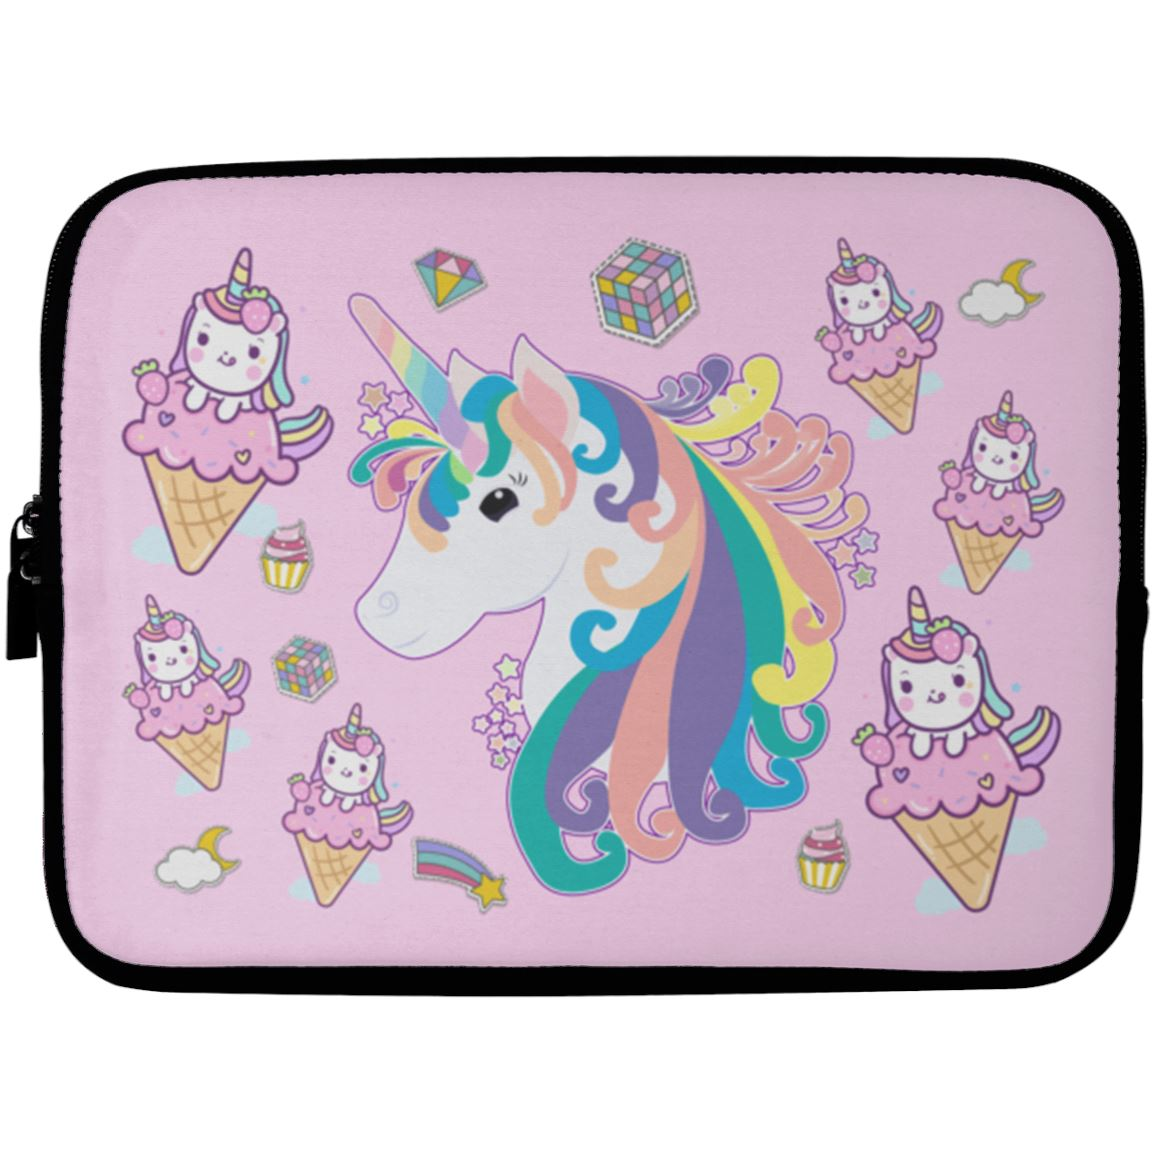 Twinkle Unicorn Laptop Sleeve Case Apparel Laptop Sleeve - 10 inch